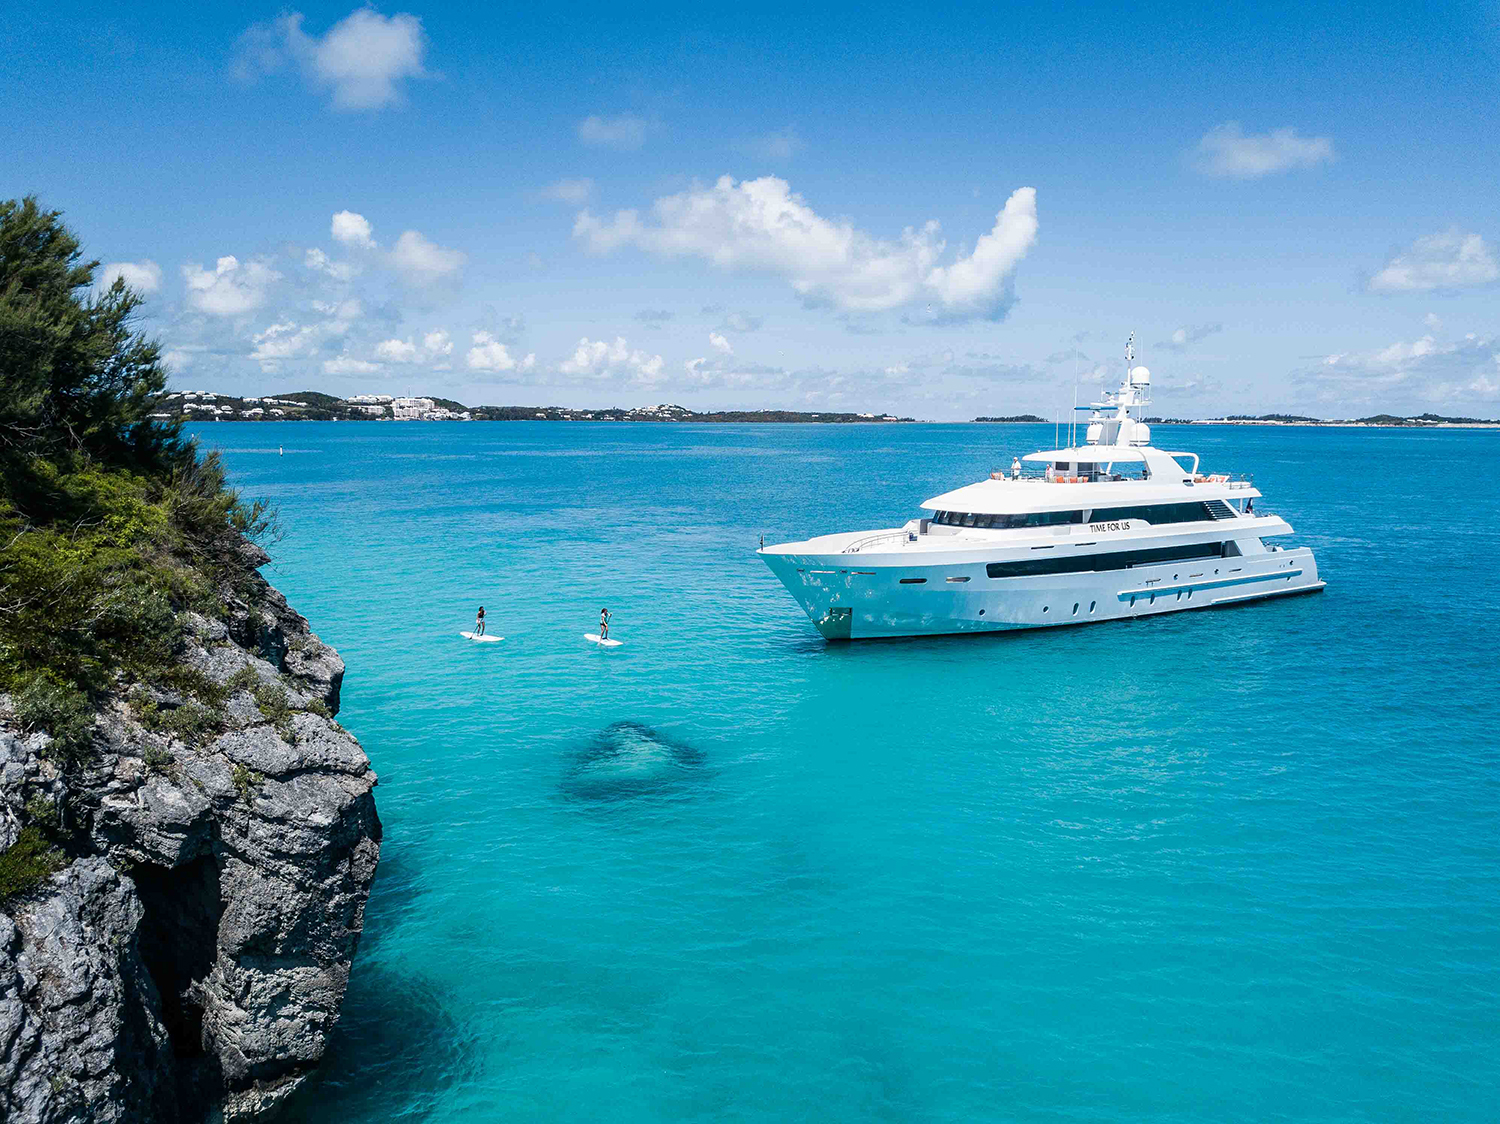 At 150 feet in length, the motor yacht  Time For Us , shown by Burgess, is the largest yacht among 24 at the 2019 Newport Charter Yacht Show presented by Helly Hansen Newport. (photo courtesy of Burgess)